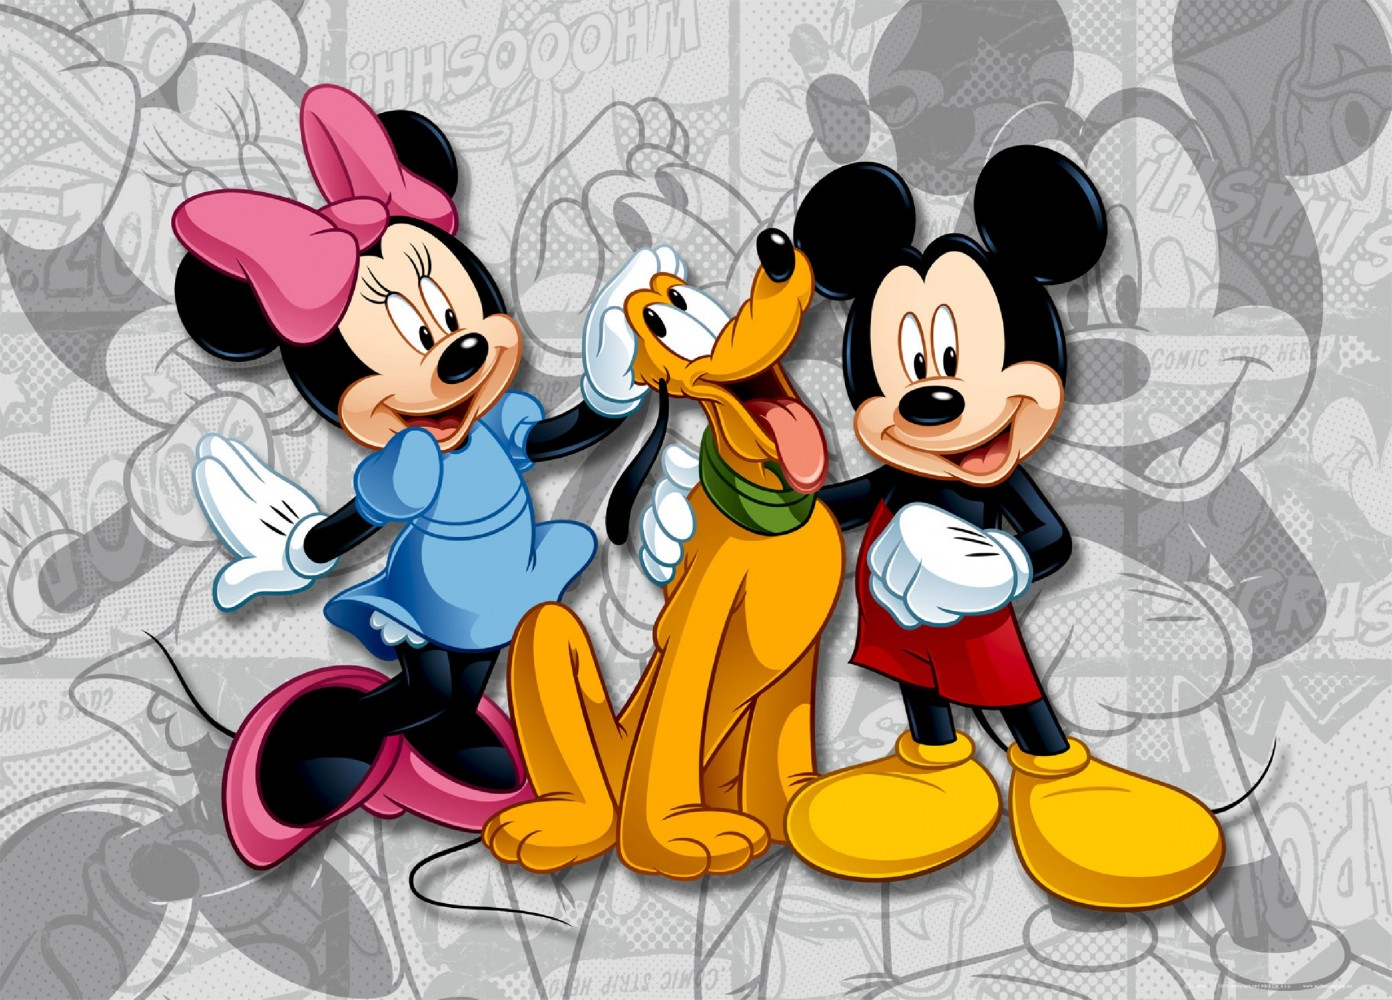 xxl poster fototapete tapete disney micky mouse minni pluto foto 160 x 115 cm. Black Bedroom Furniture Sets. Home Design Ideas